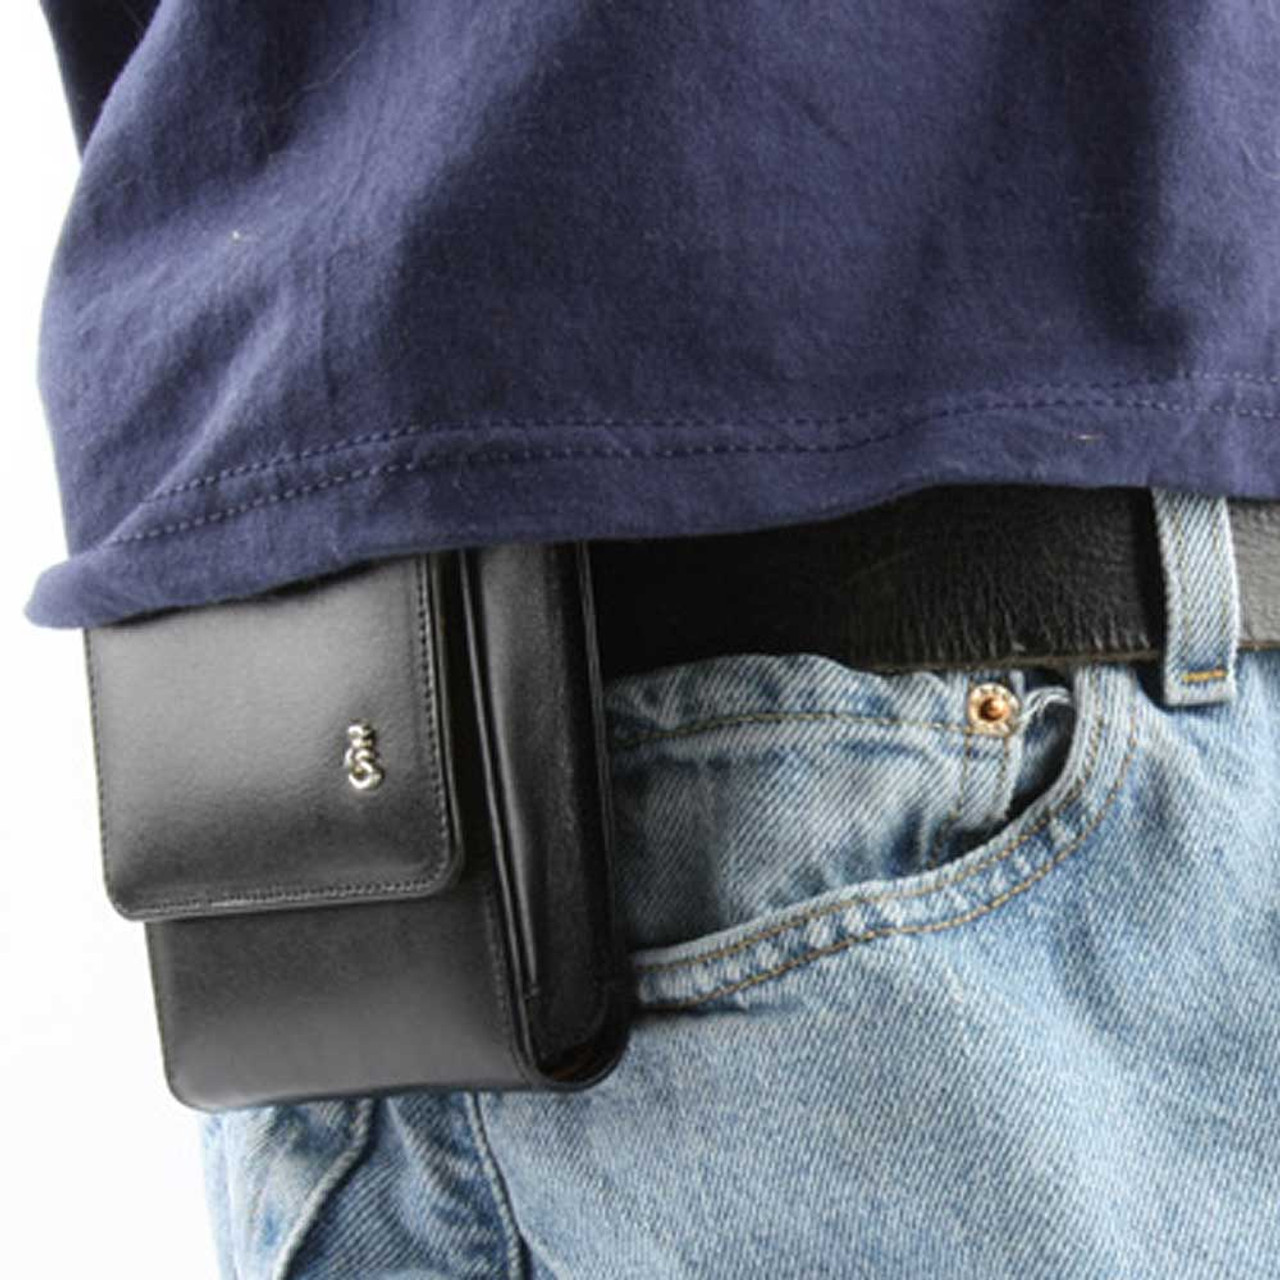 Springfield 911 (.380) Sneaky Pete Holster (Belt Clip)